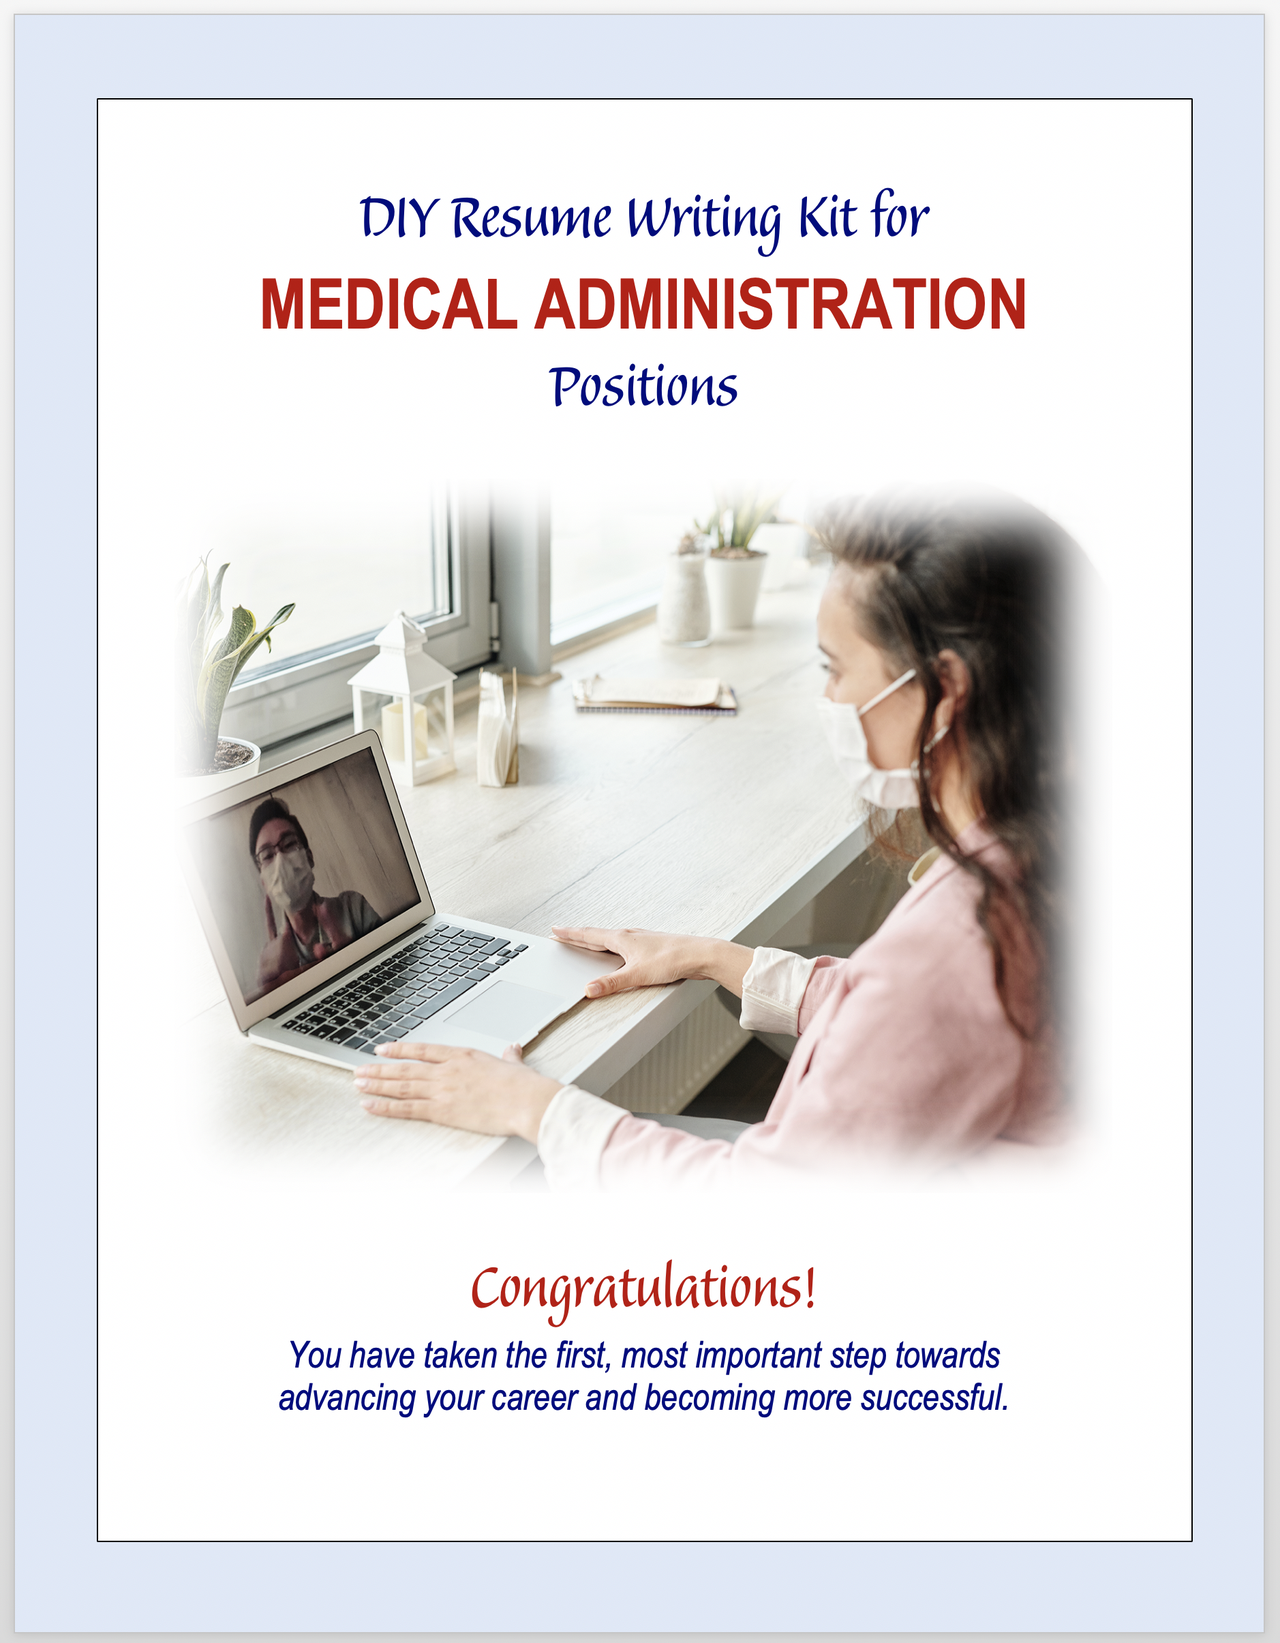 medical administration.png